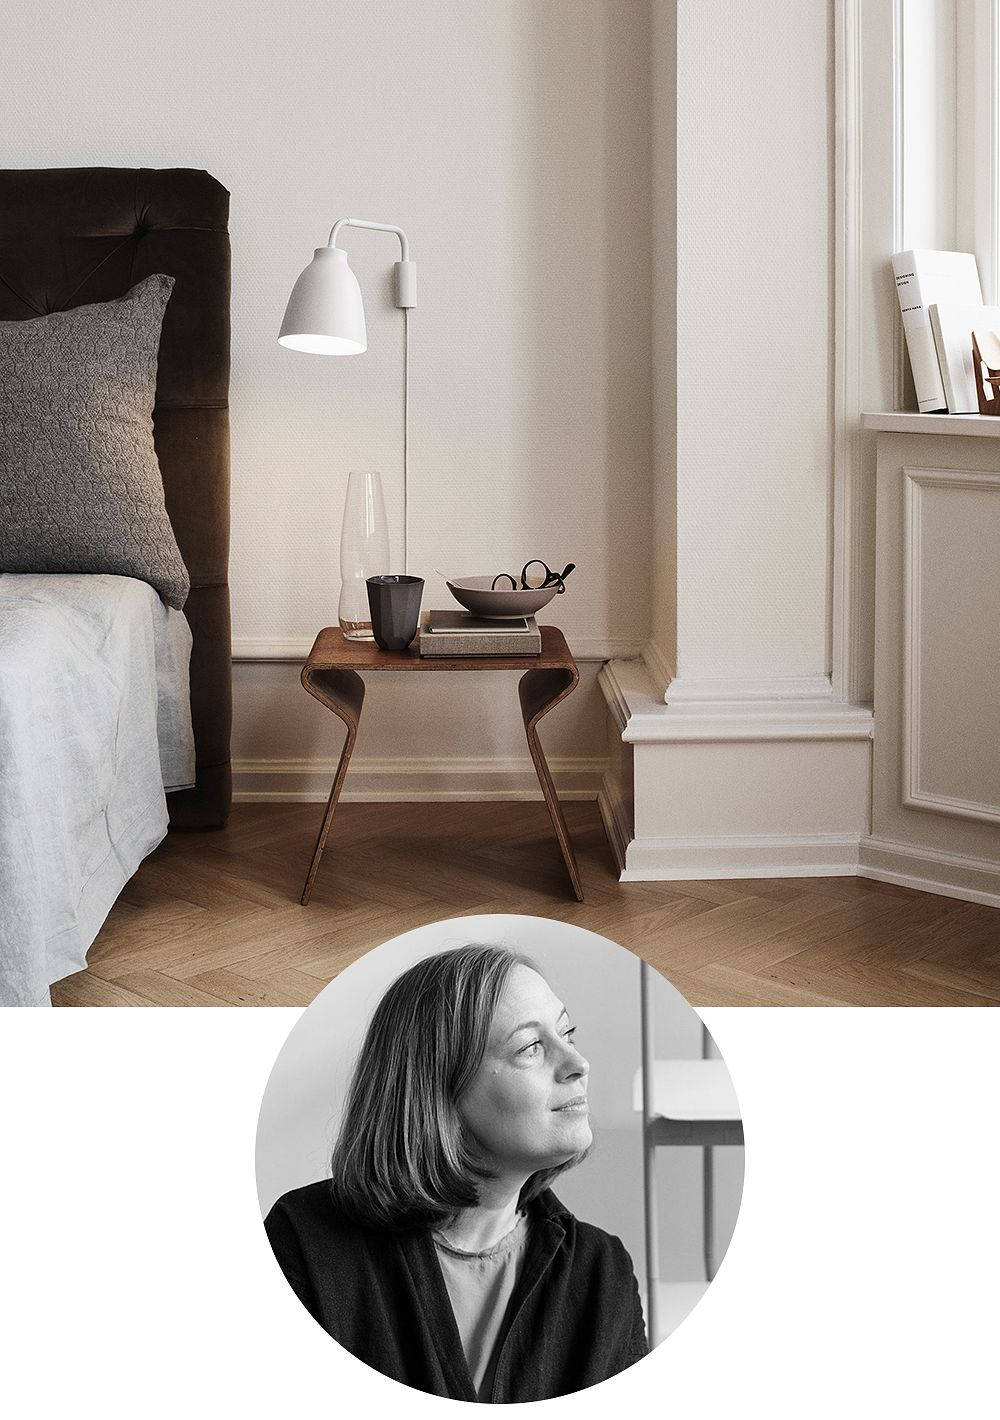 Designer Cecilie Manz featuring her design, the Caravaggio wall lamp.